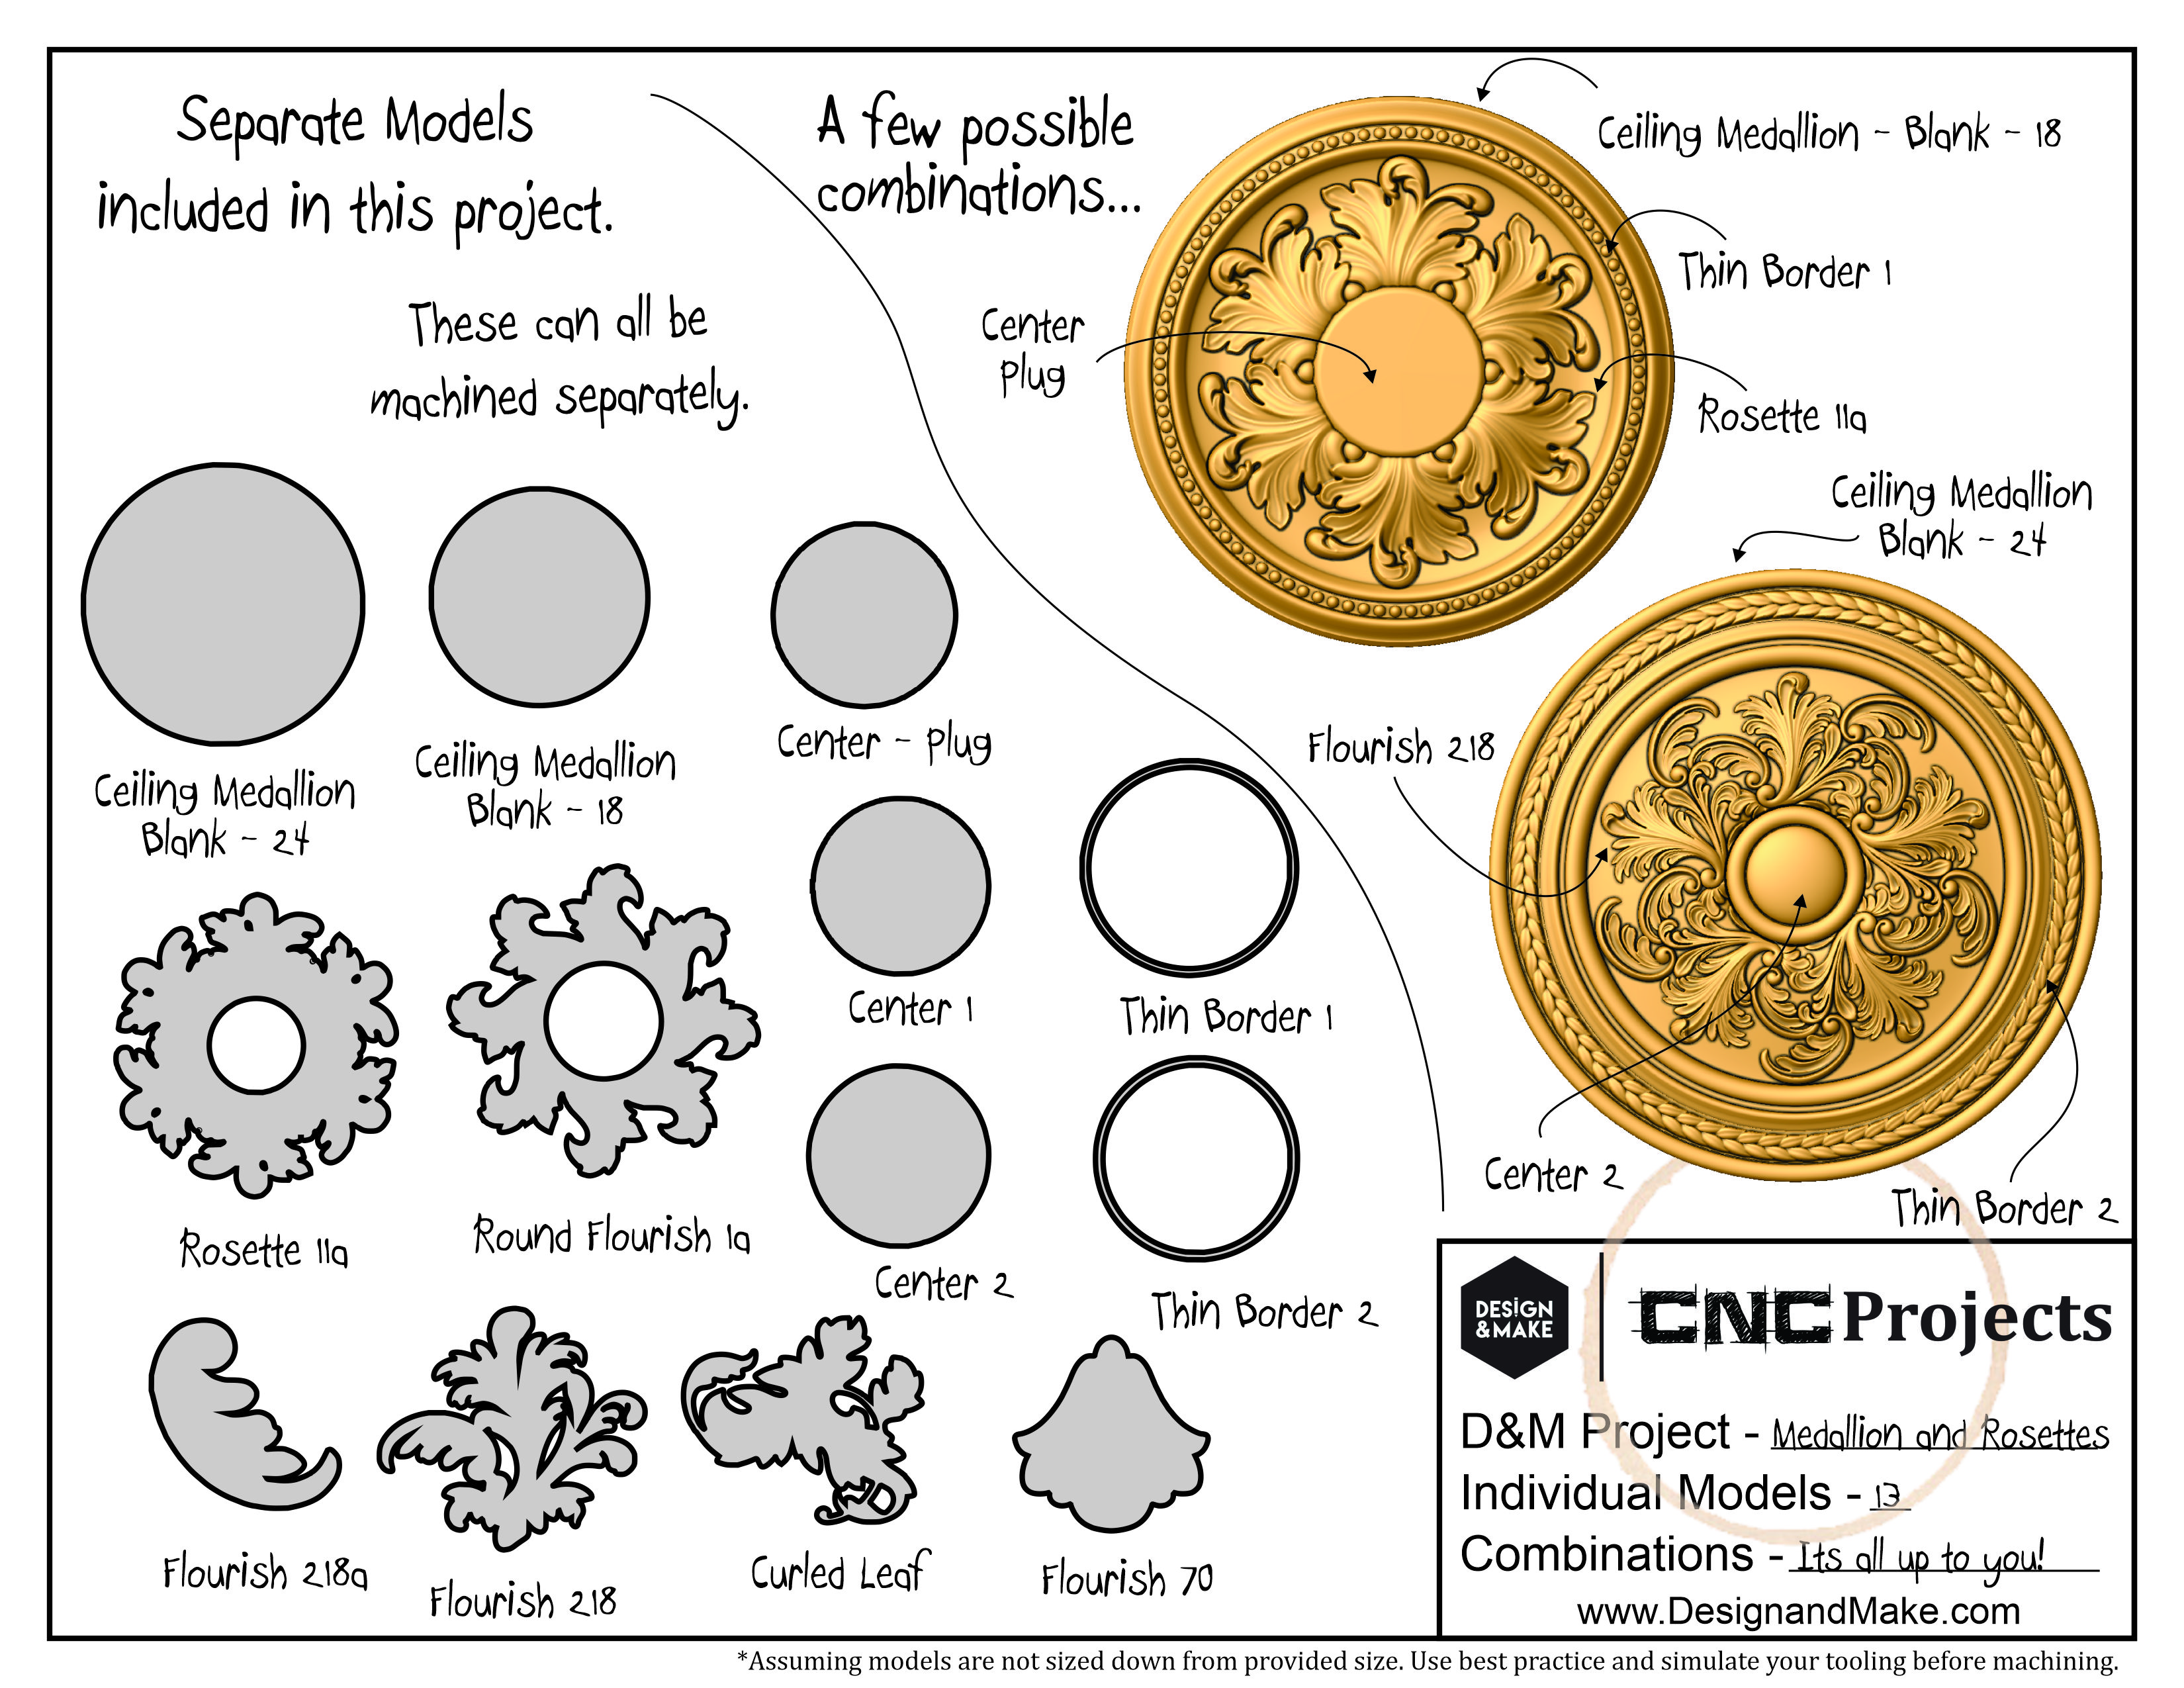 Architectural Elements - Medallions and Rosettes - Project Sheet